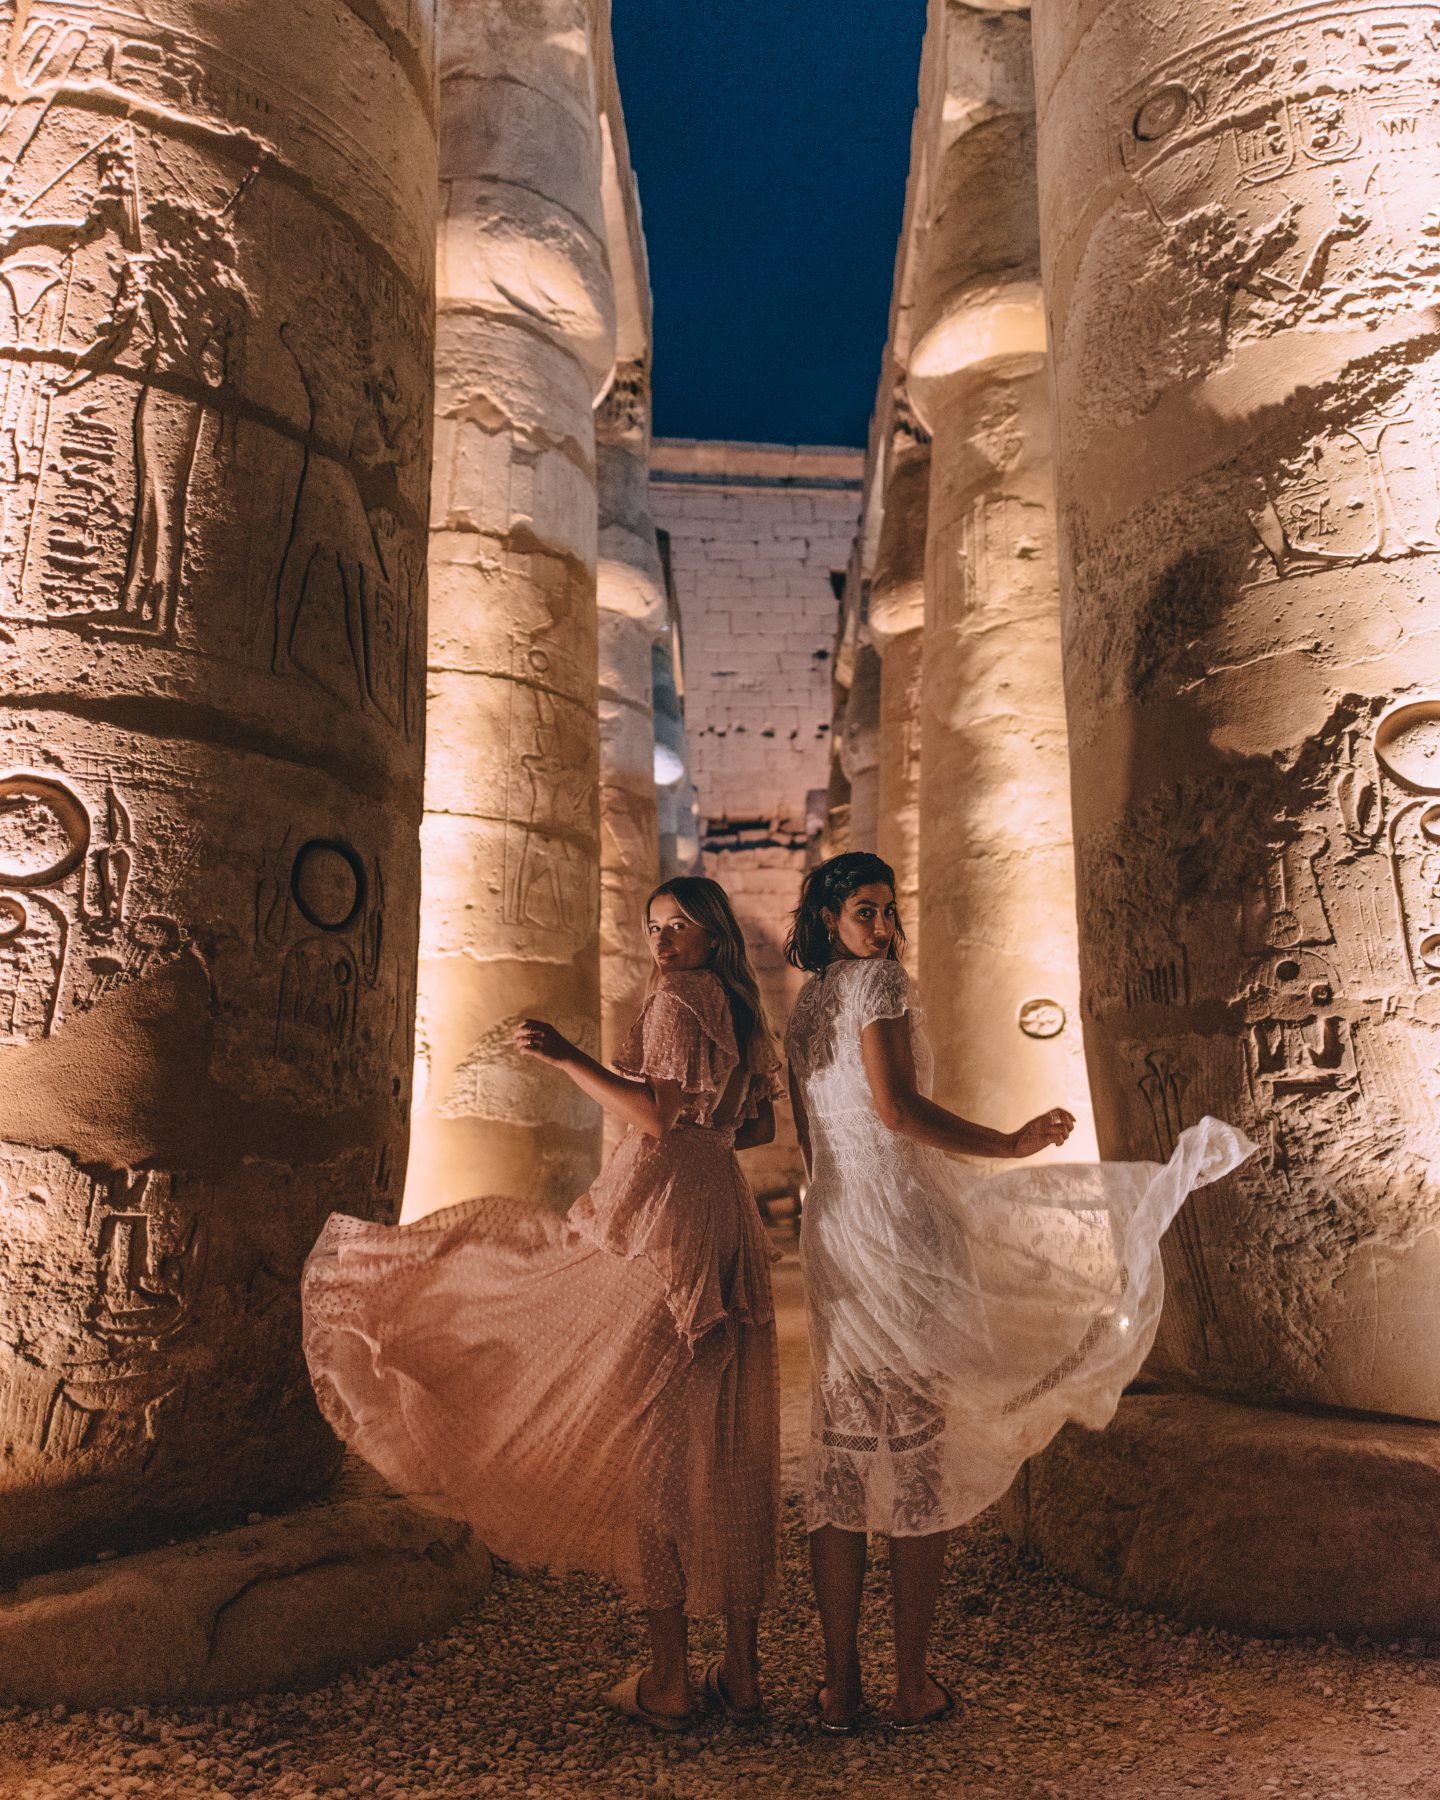 Two women in Luxor Temple at night in Luxor, Egypt